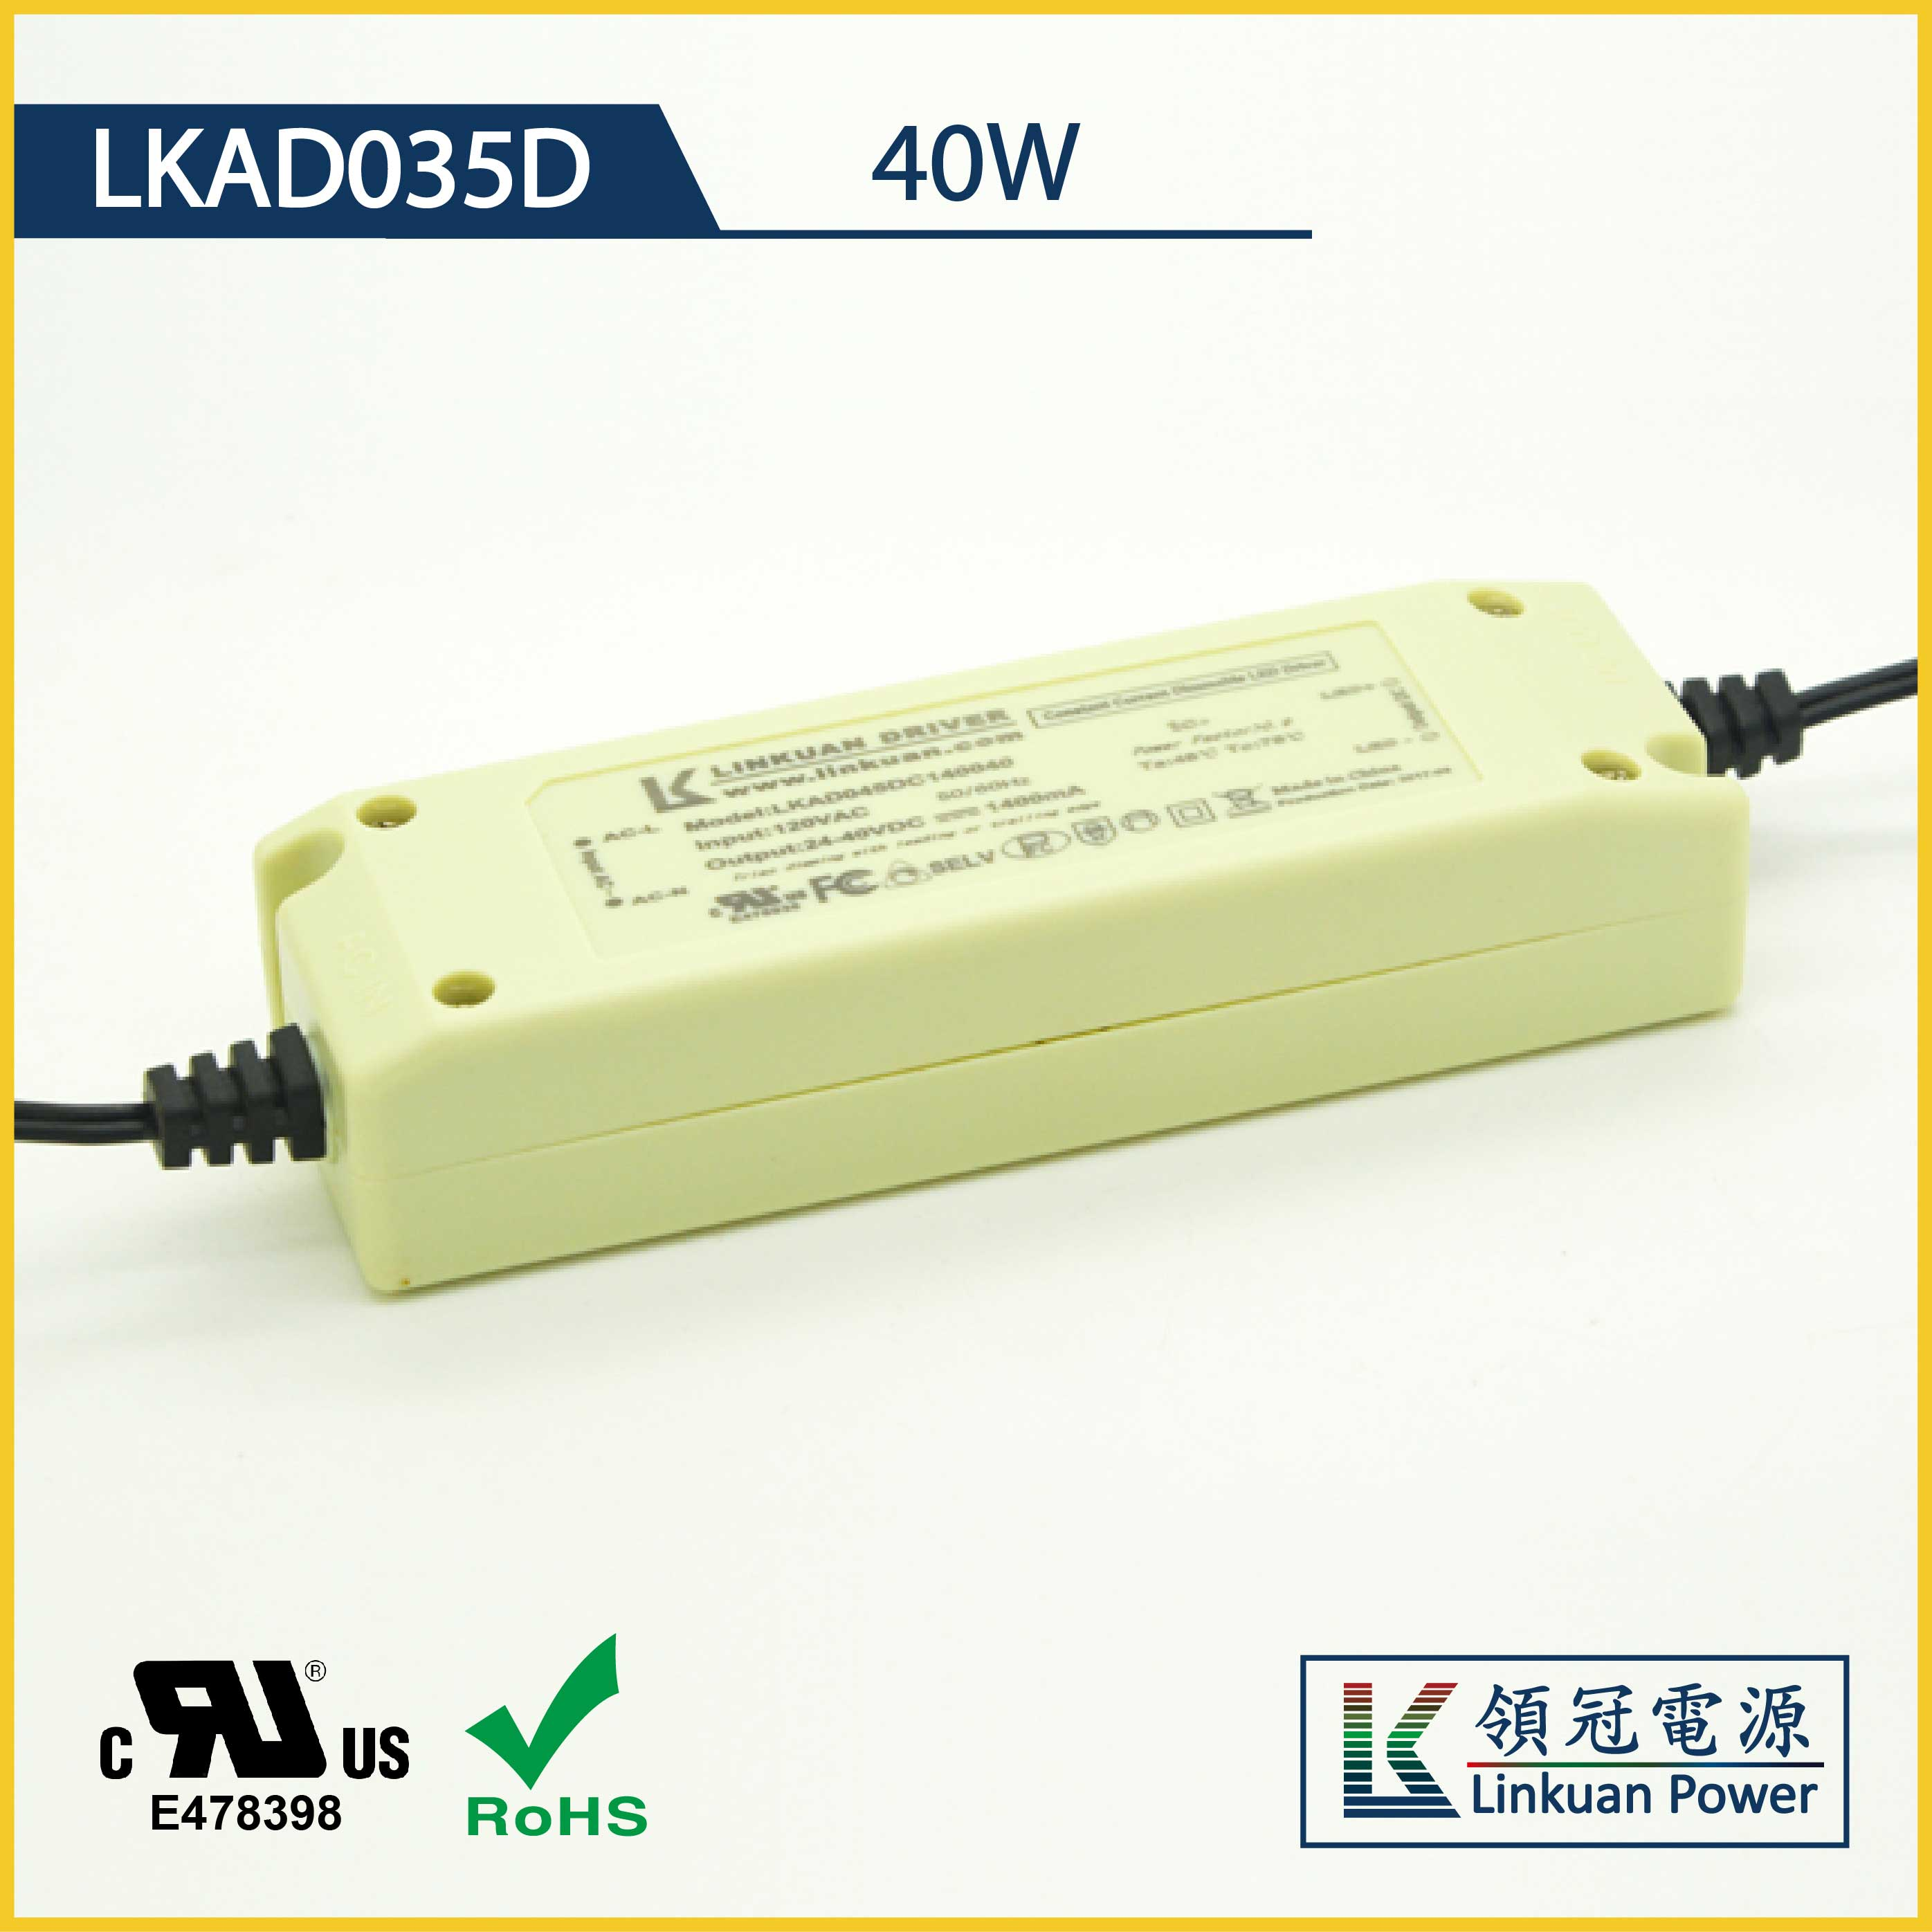 LKAD045D 60W 24-40V 1500 Dimmable LED drivers